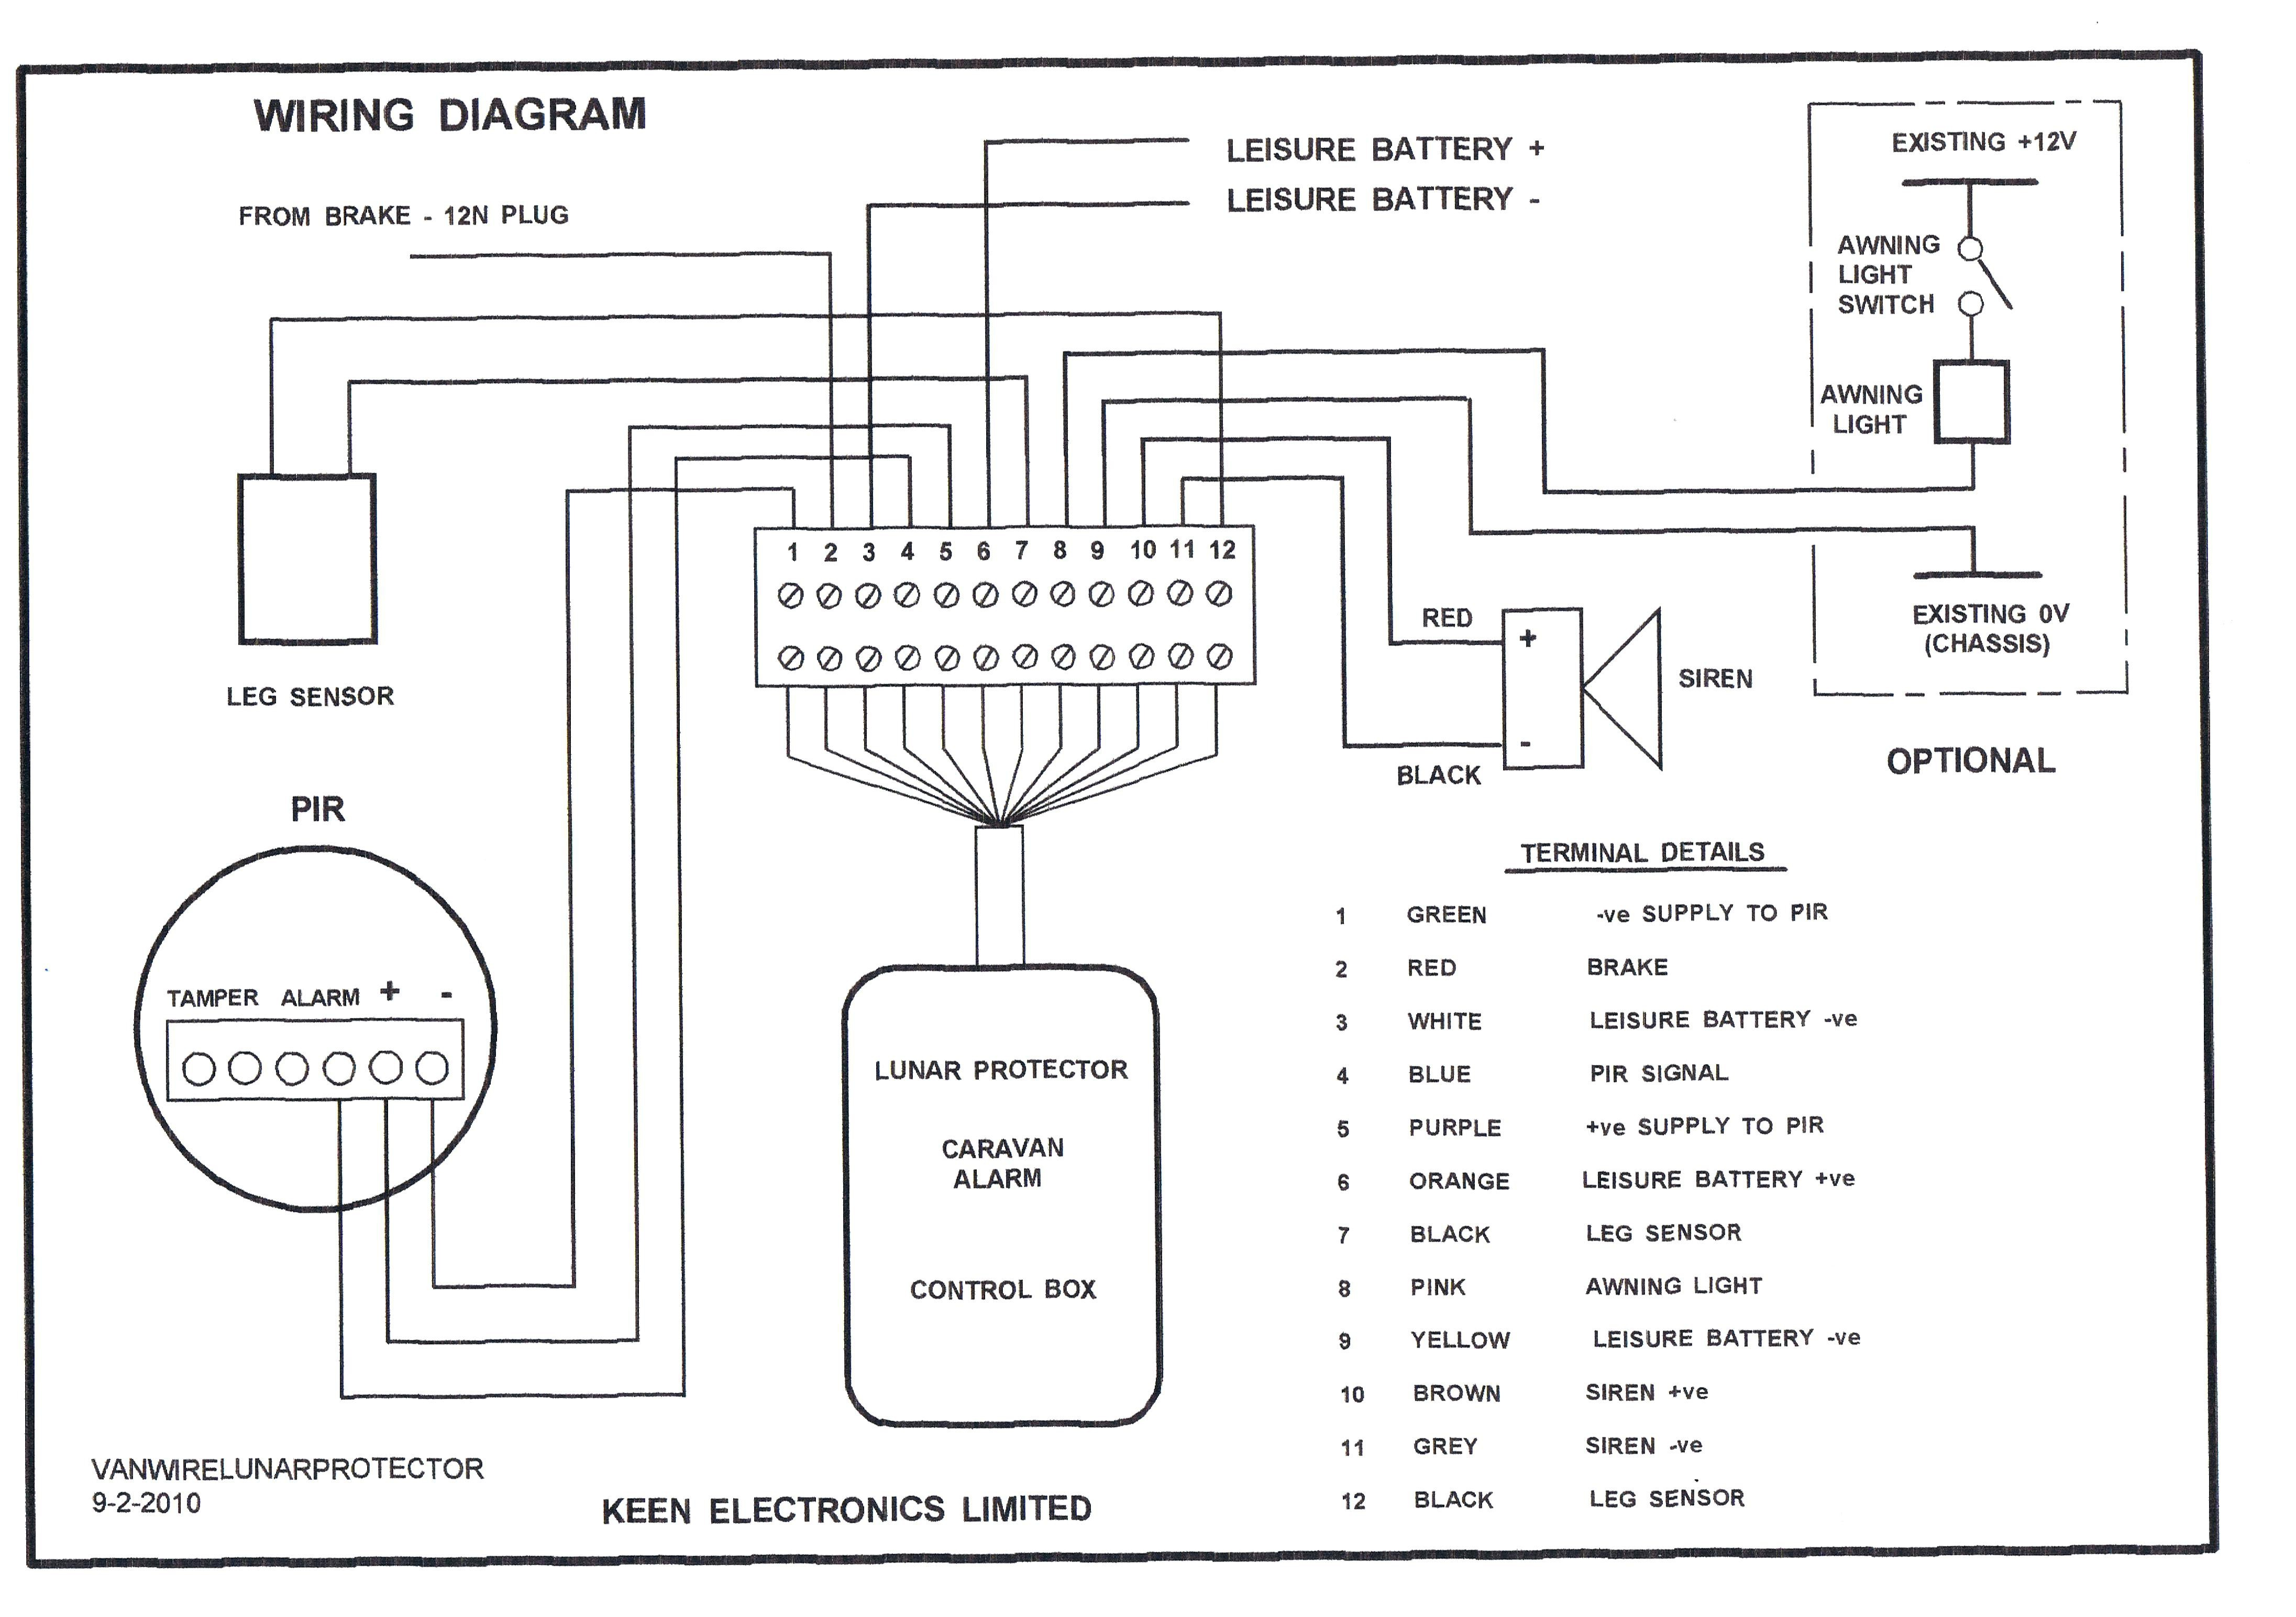 Wiring Diagram for Fire Alarm System Mercial Fire Alarm System ...